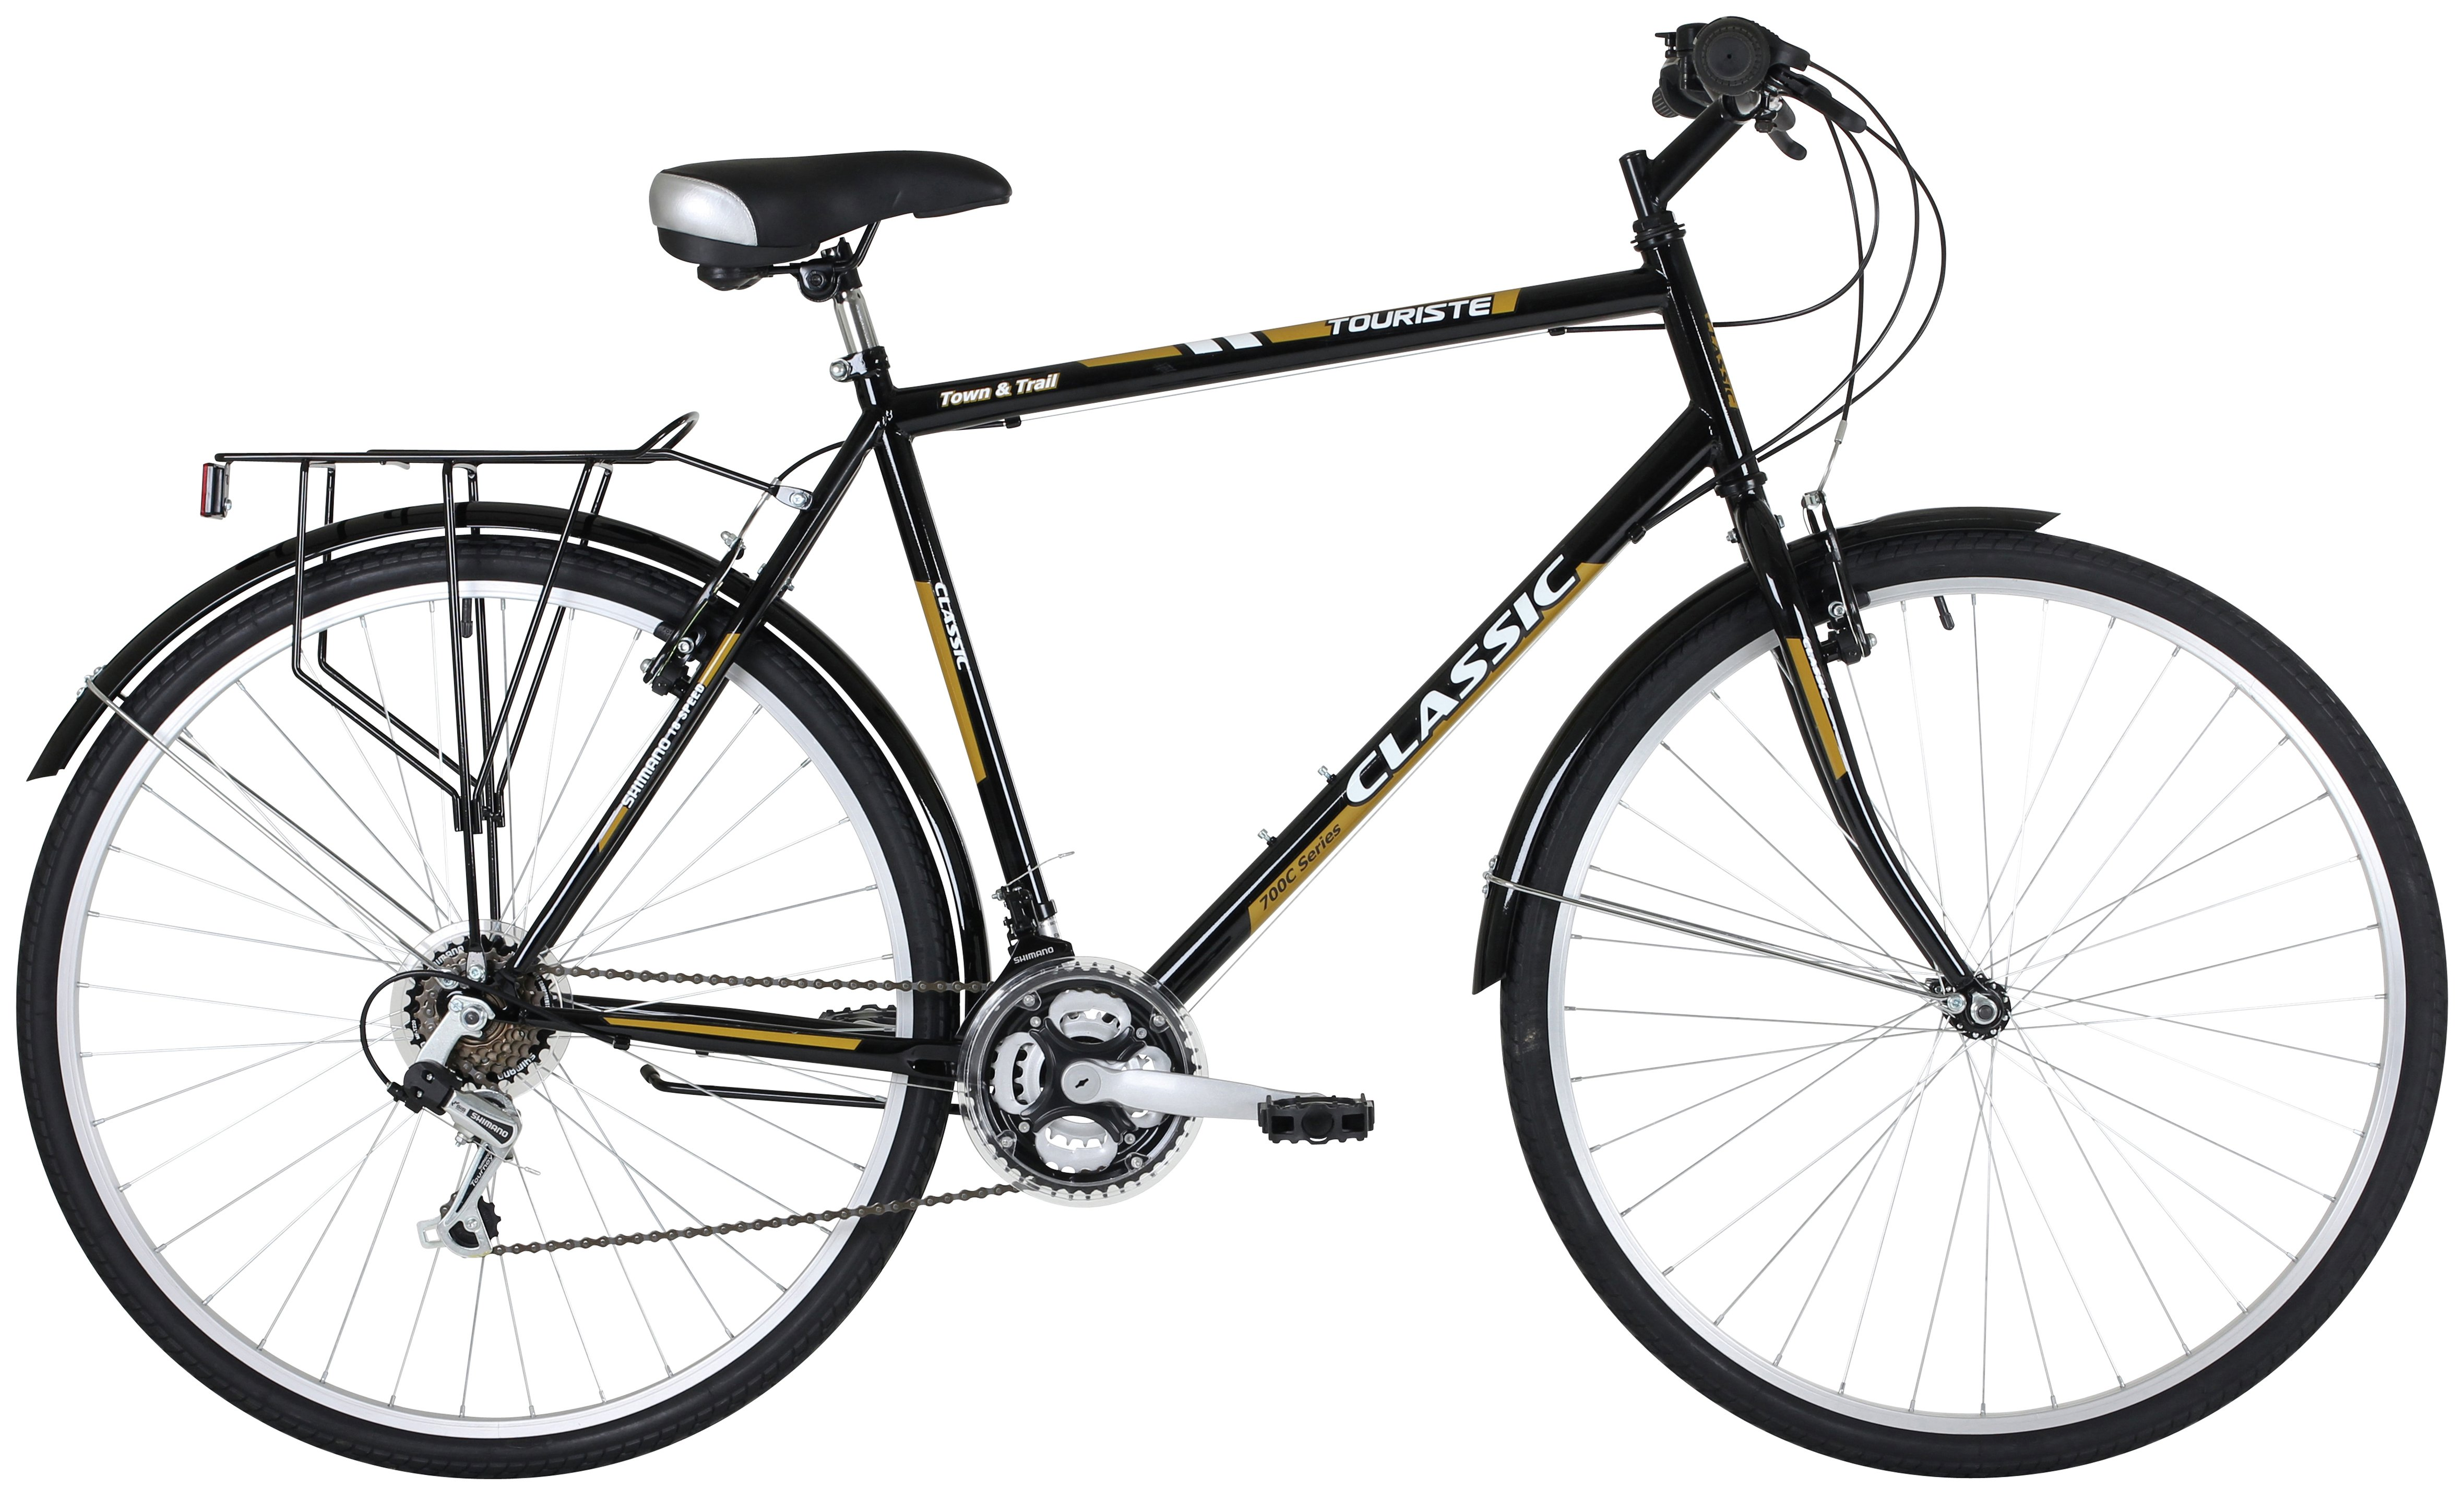 Image of Classic Touriste 700C Commuter Hybrid Bike - Mens